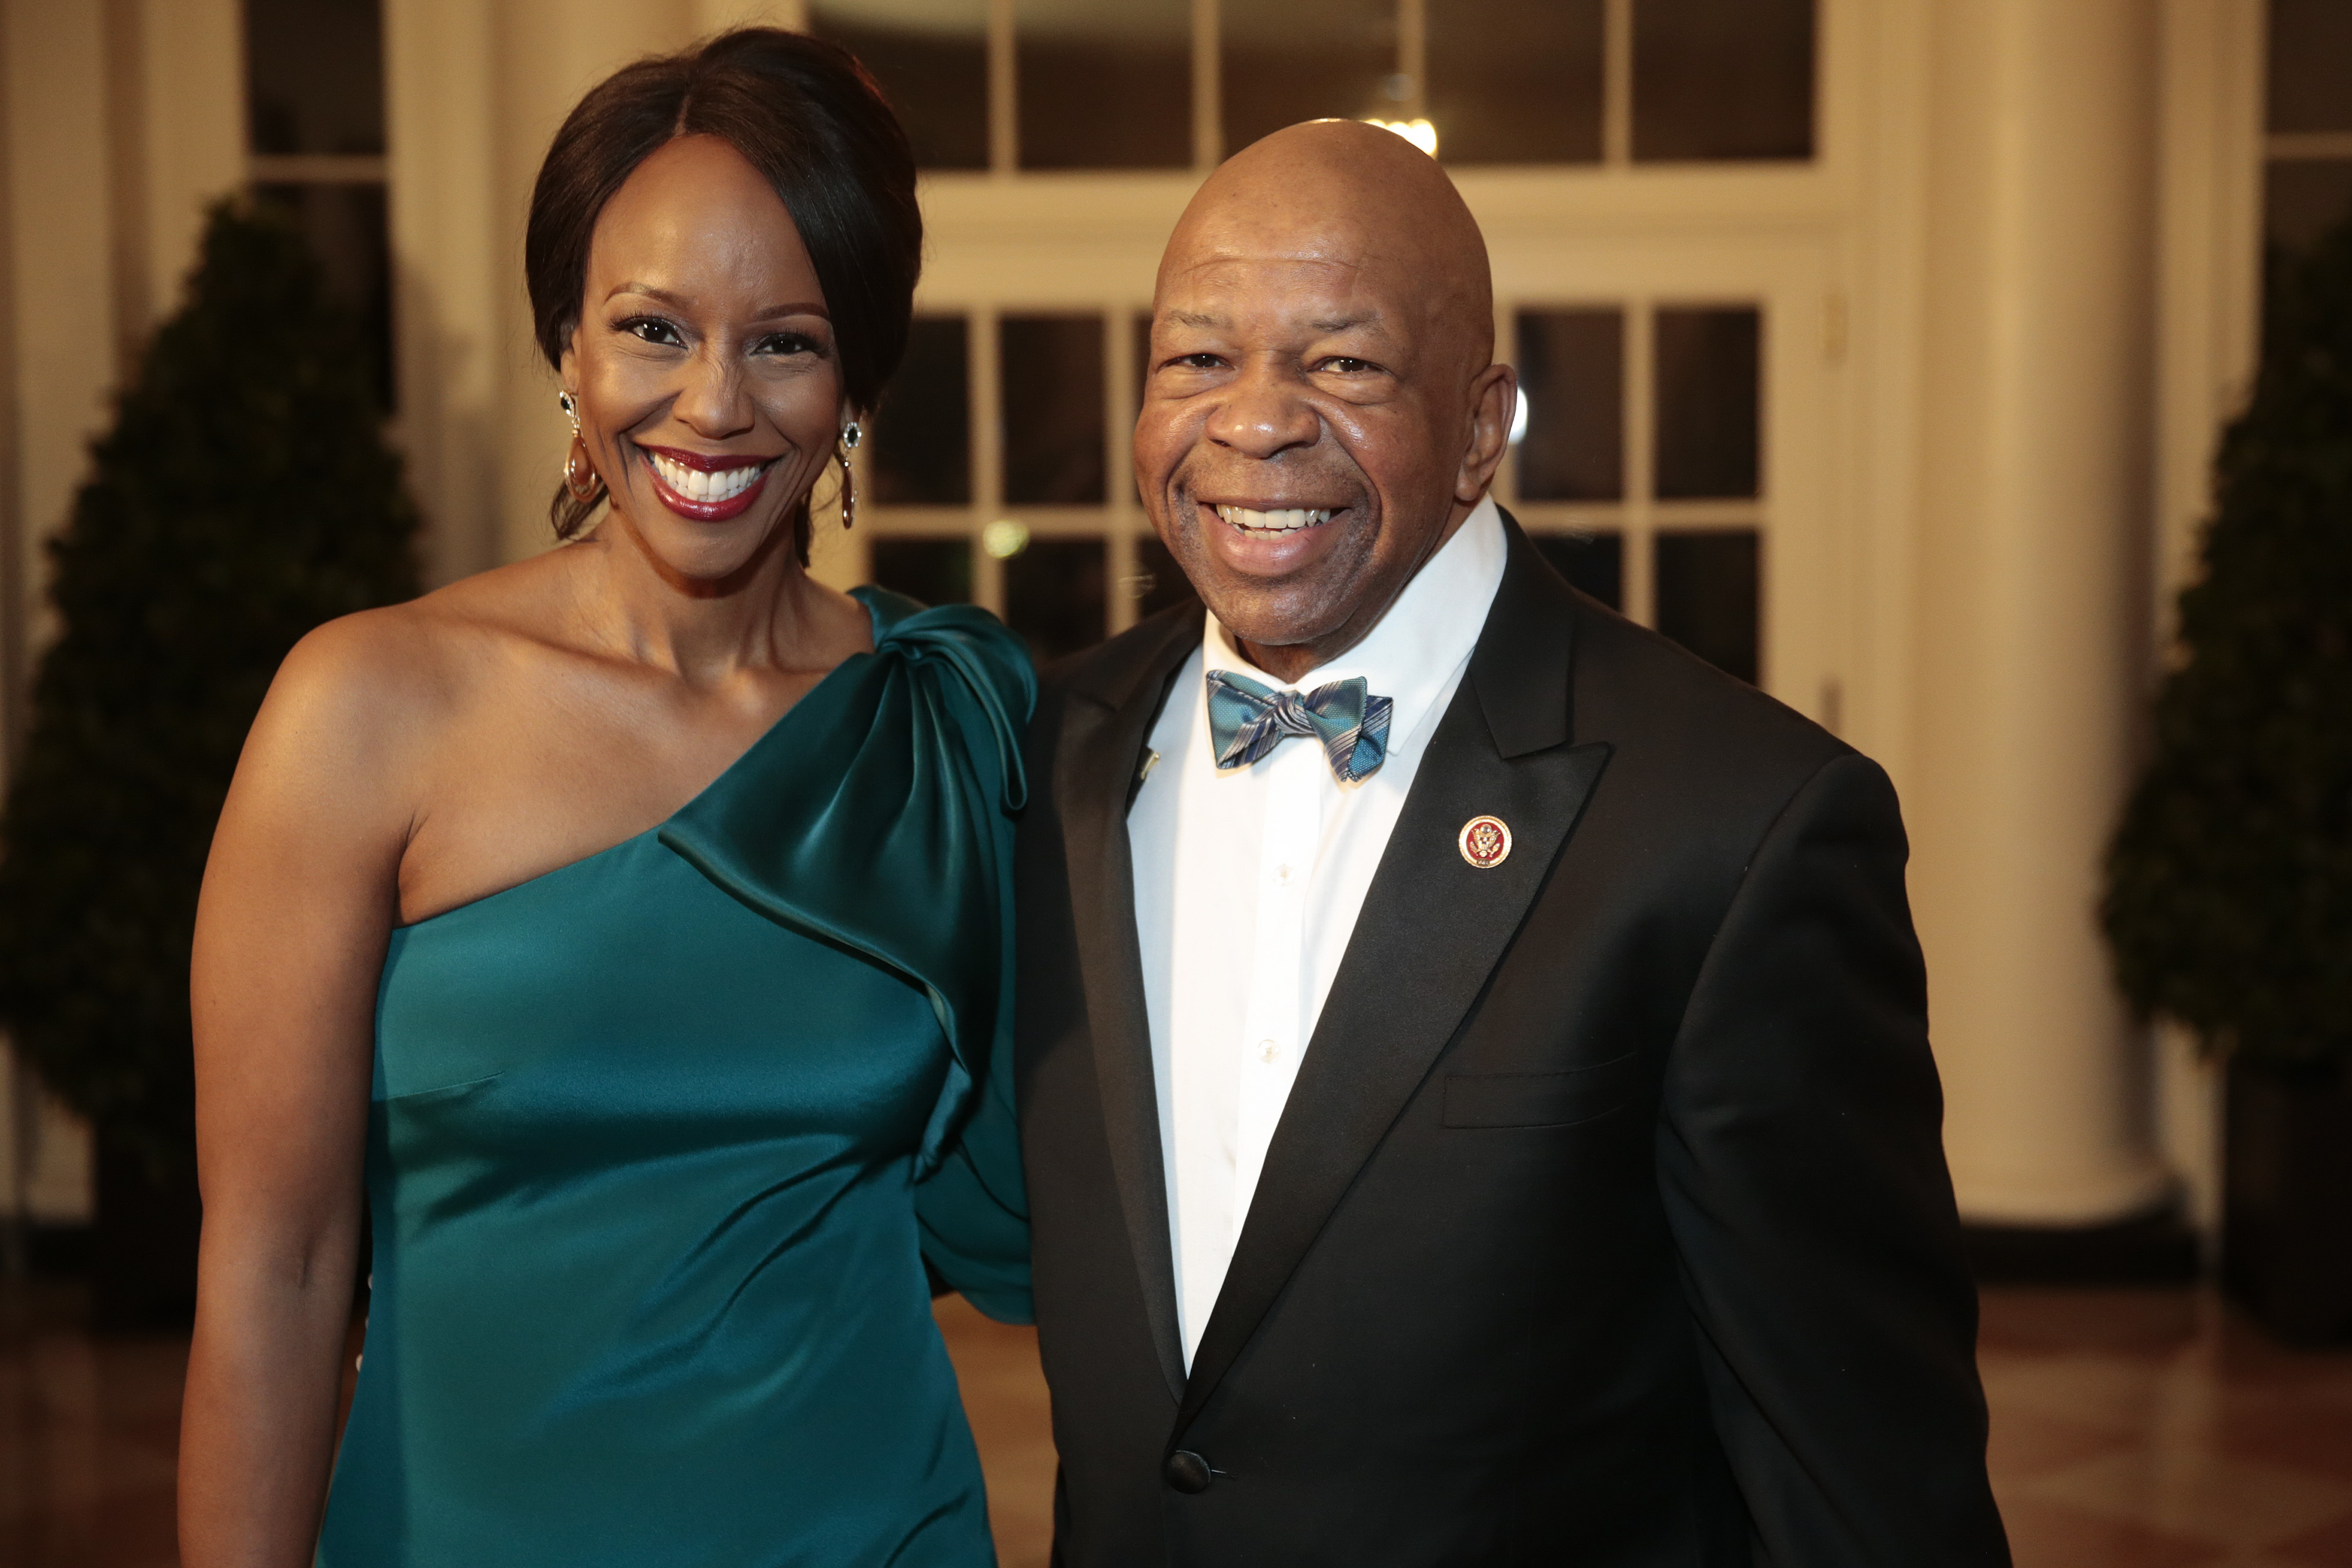 WASHINGTON, DC - FEBRUARY 11: Representative Elijah Cummings, a Democrat from Maryland, right, and Maya Rockeymoore Cummings arrive to a state dinner hosted by U.S. President Barack Obama and U.S. first lady Michelle Obama in honor of French President Francois Hollande at the White House on February 11, 2014 in Washington, DC. (Photo by Andrew Harrer-Pool/Getty Images)